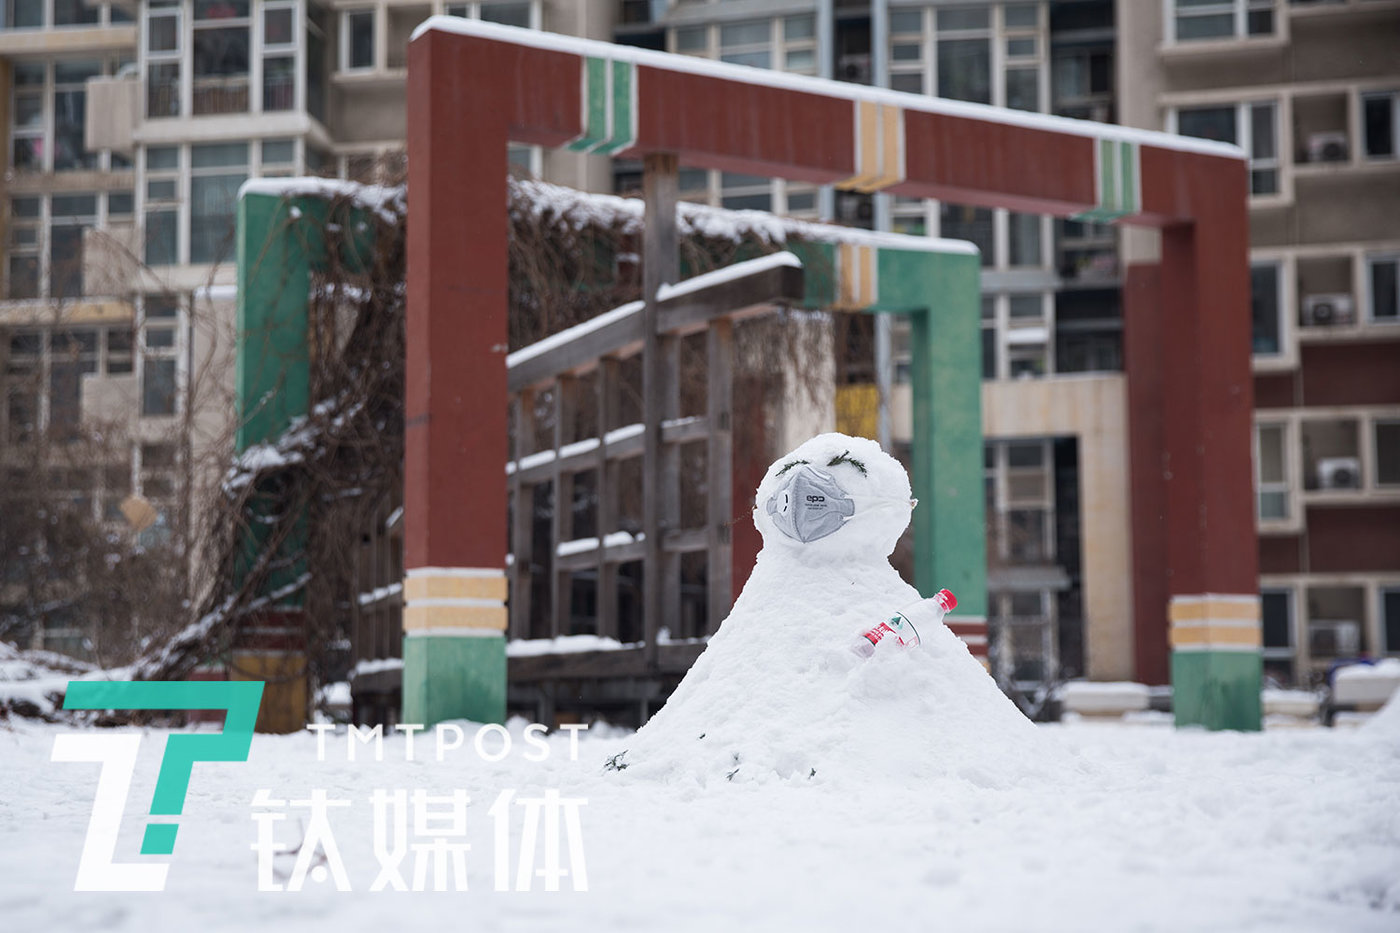 A masked snowman.  (Fengtai District, Beijing, February 6, 2020)